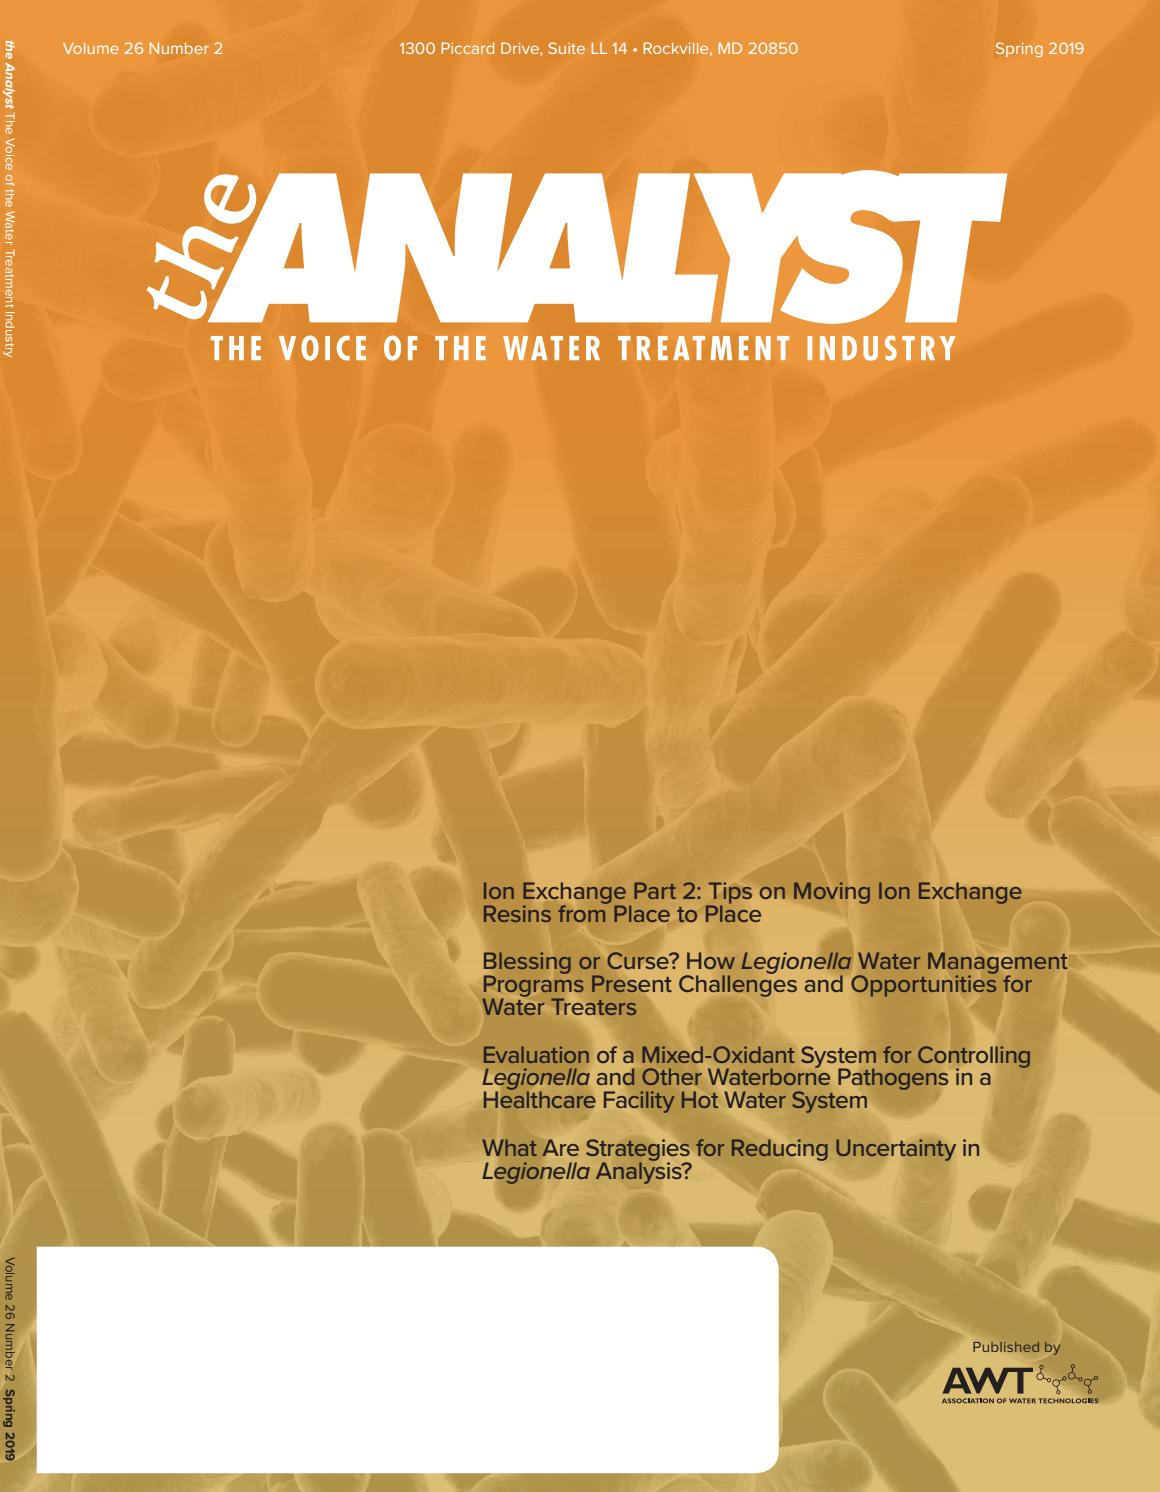 2019 Spring Analyst by Association of Water Technologies - issuu